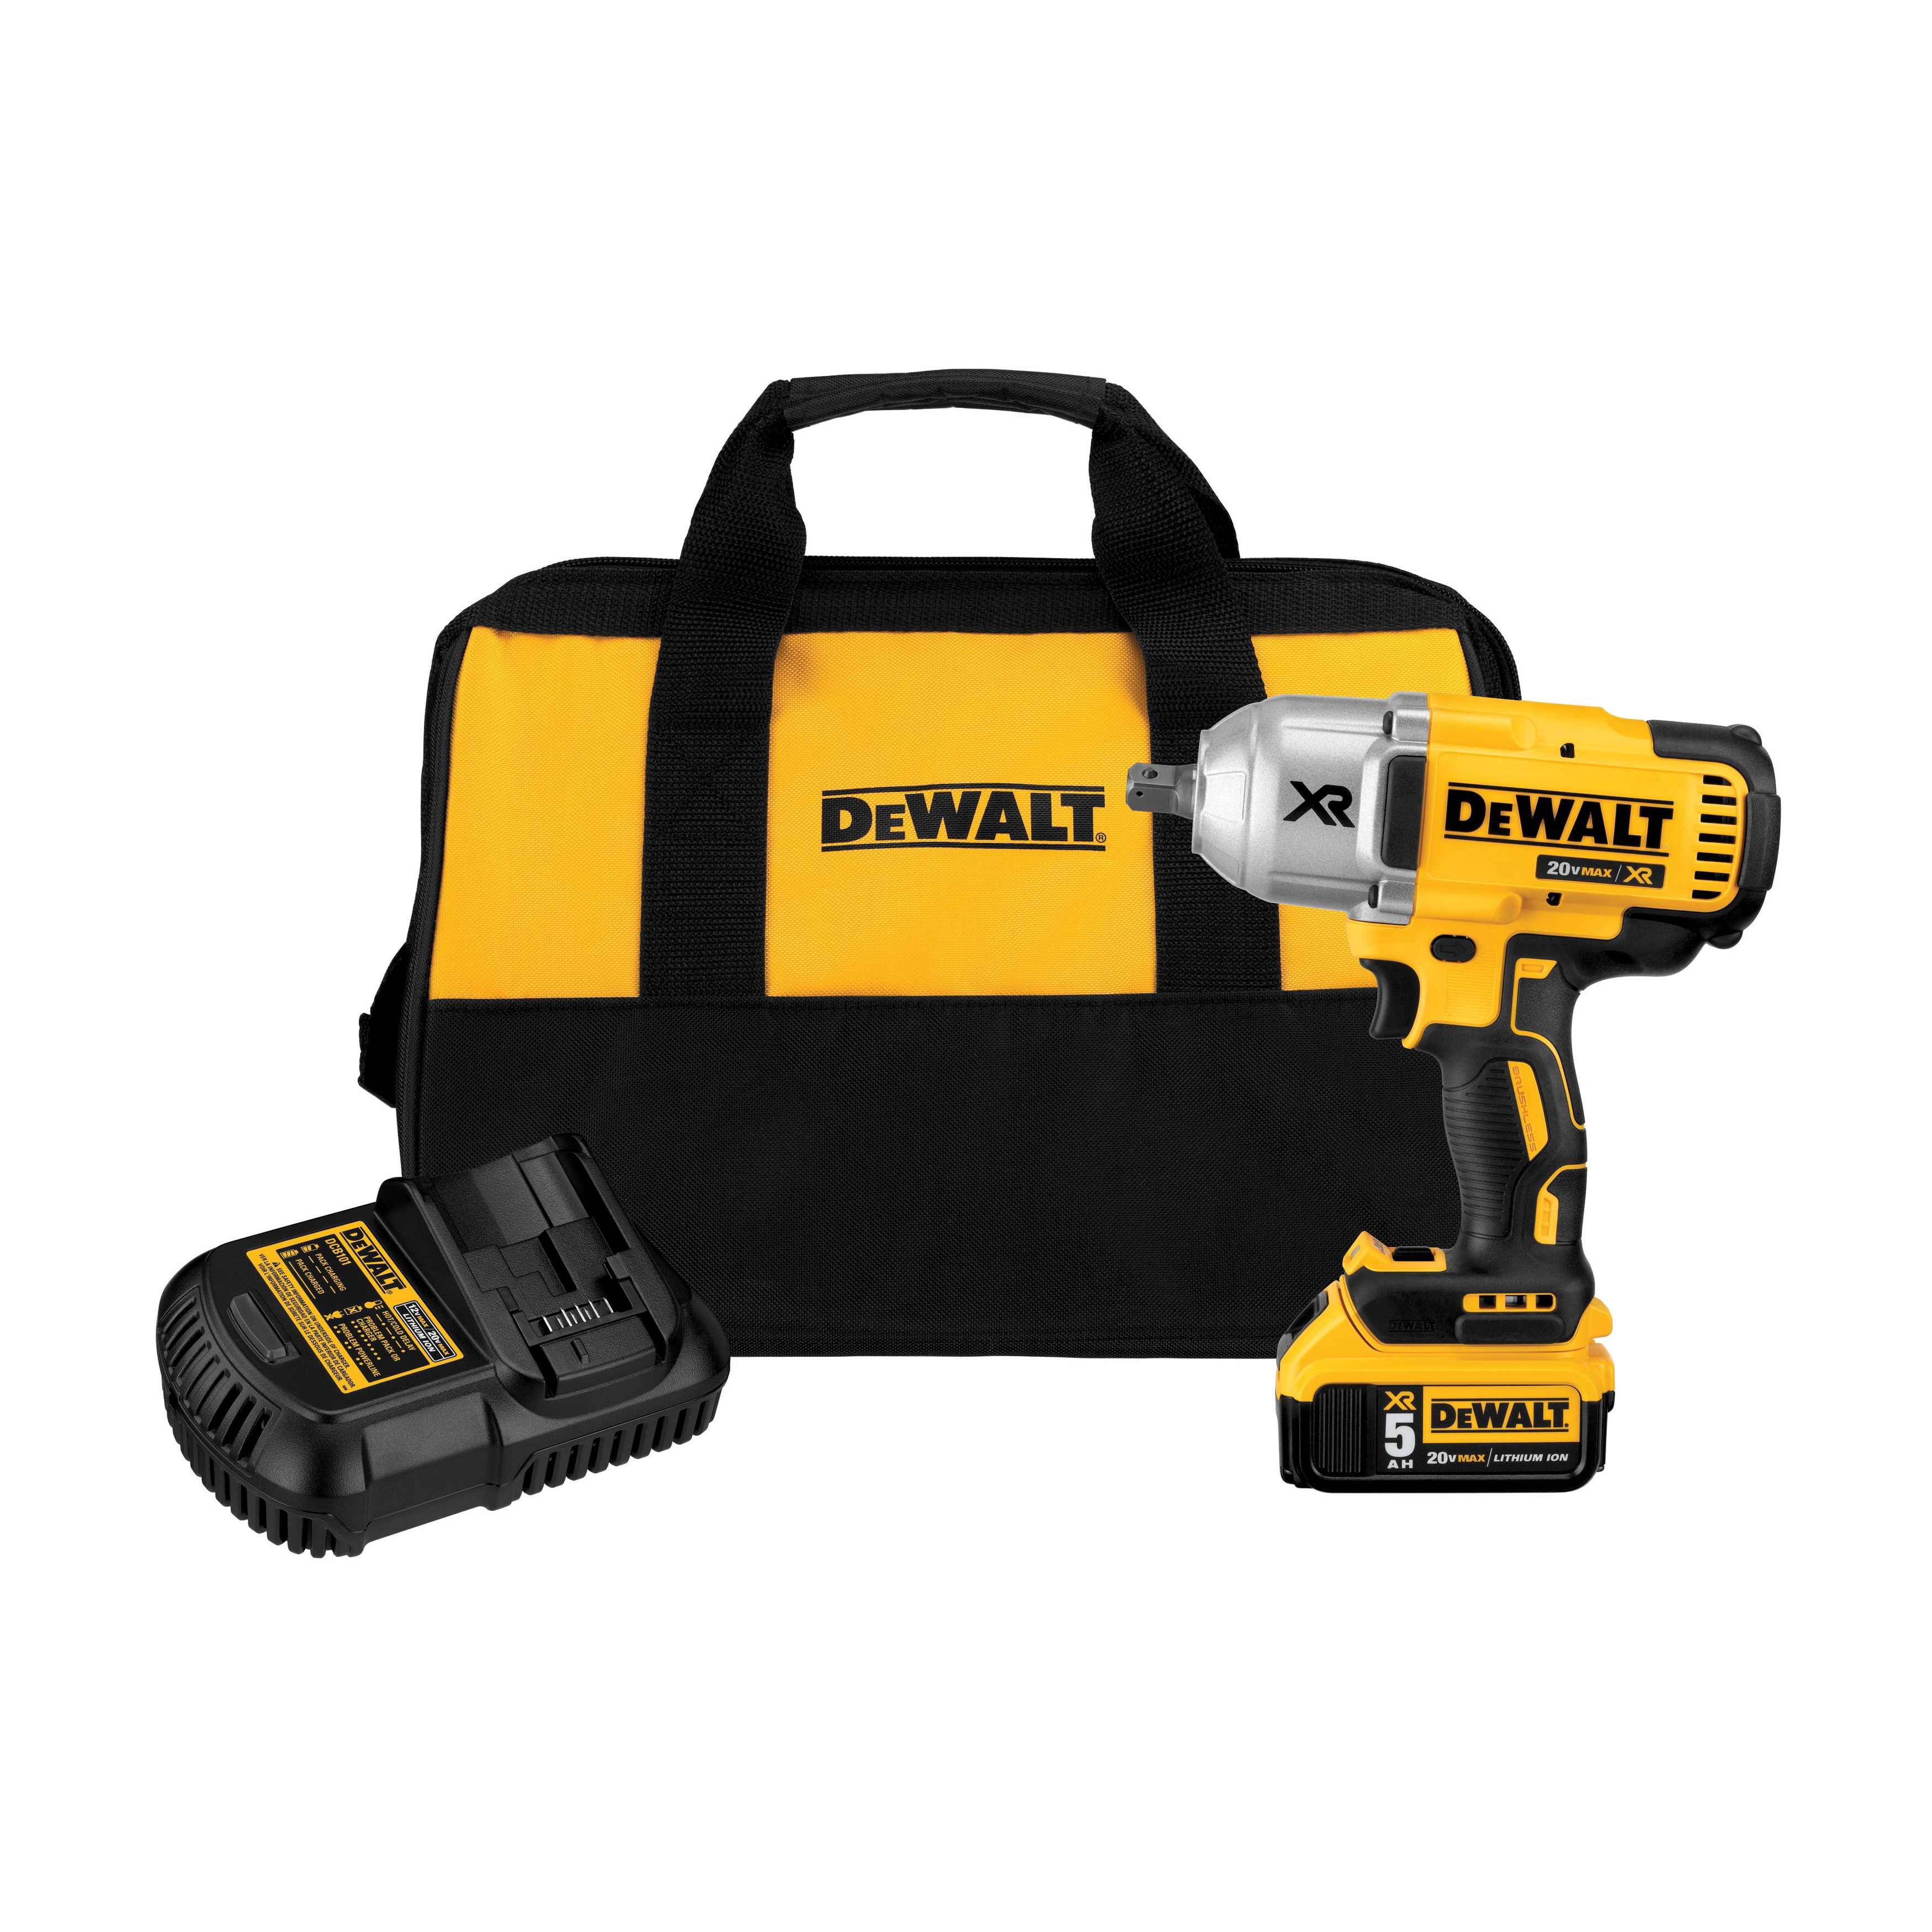 DeWALT® 20V MAX* MATRIX™ XR™ DCF899P1 Compact Cordless Impact Wrench Kit, 1/2 in Straight Drive, 700 ft-lb Torque, 20 VDC, 8-13/16 in OAL